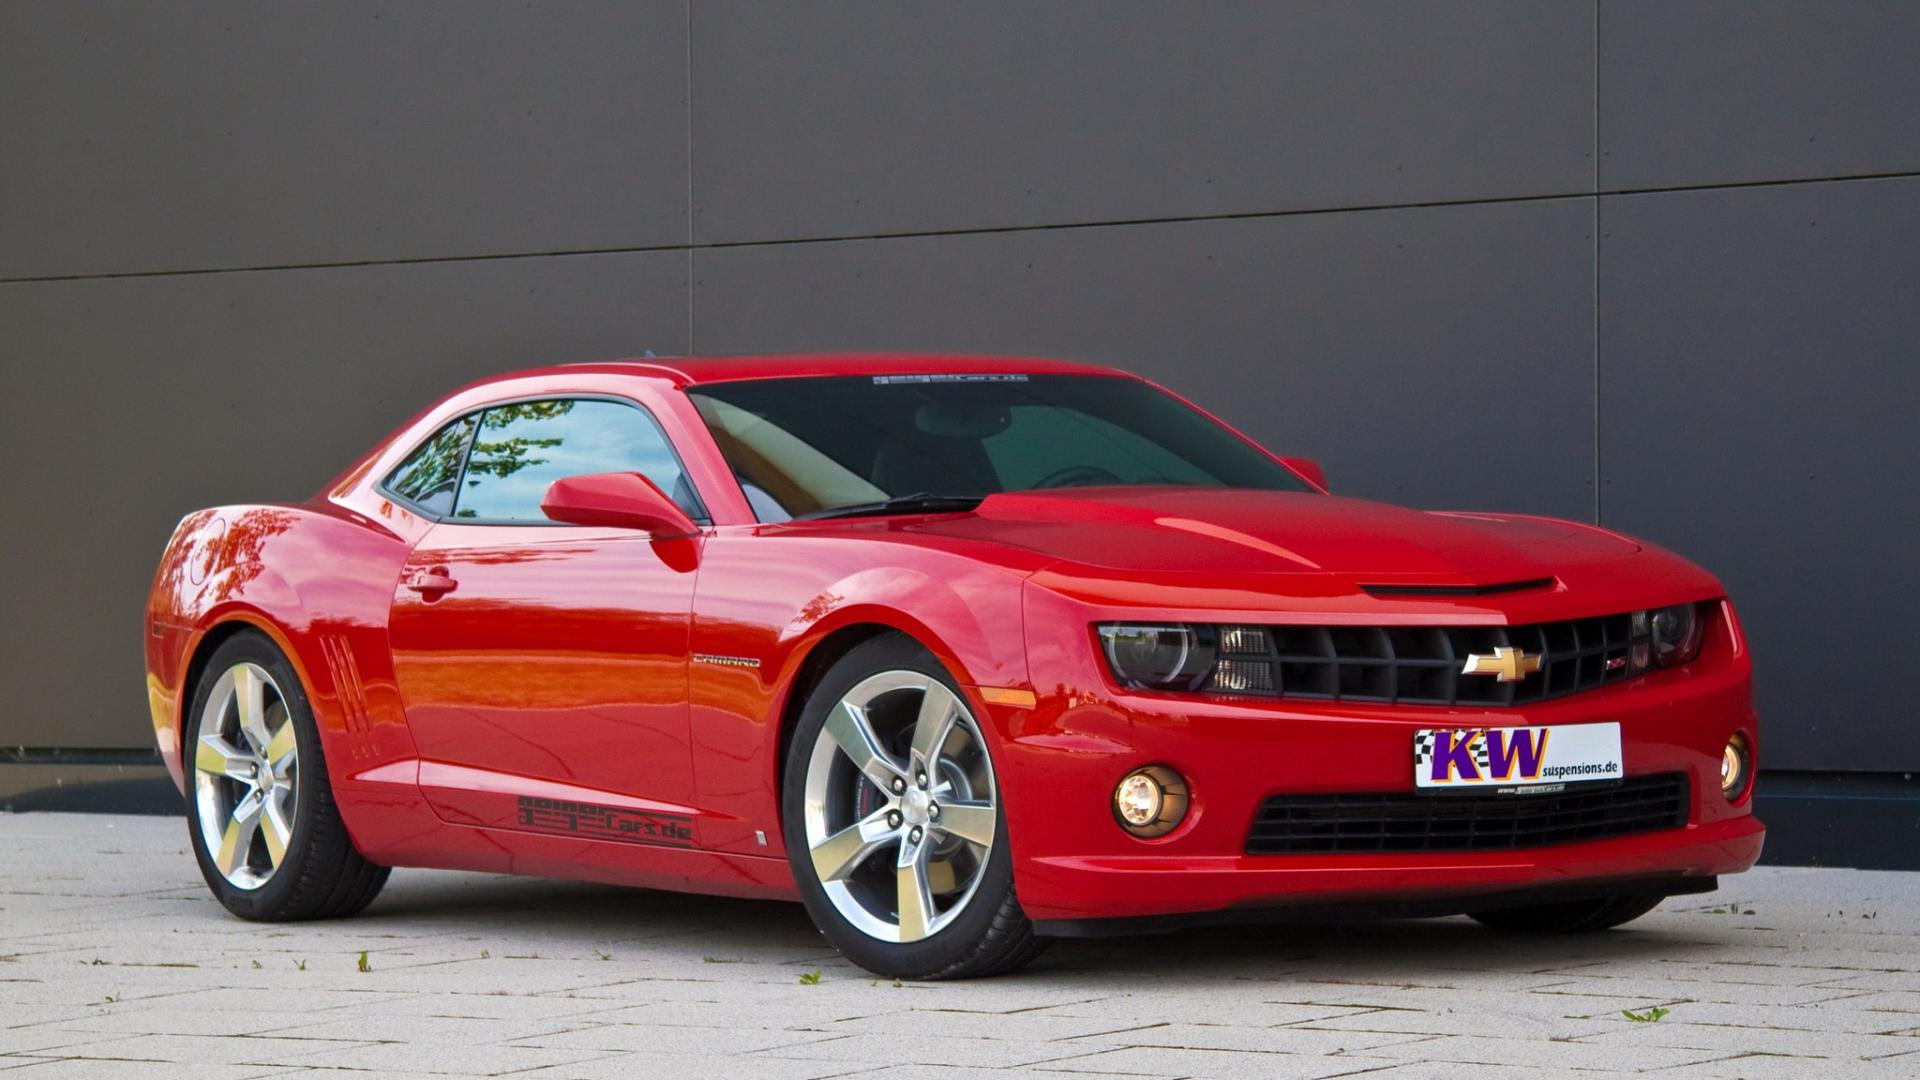 Muscle Car KW 1920x1080